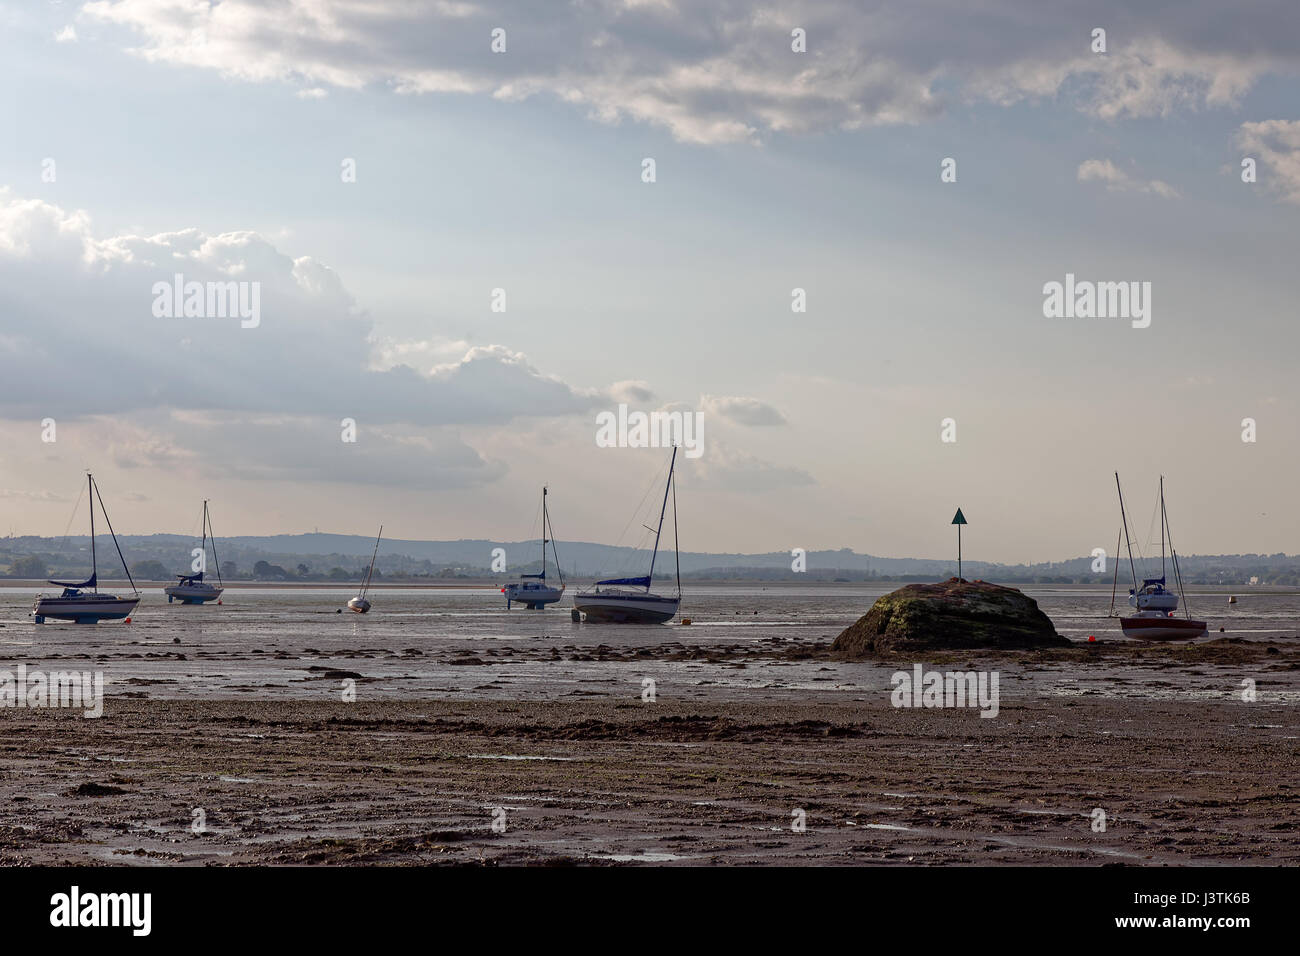 Boats beached at low tide in the River Exe estuary at Lympstone - Stock Image